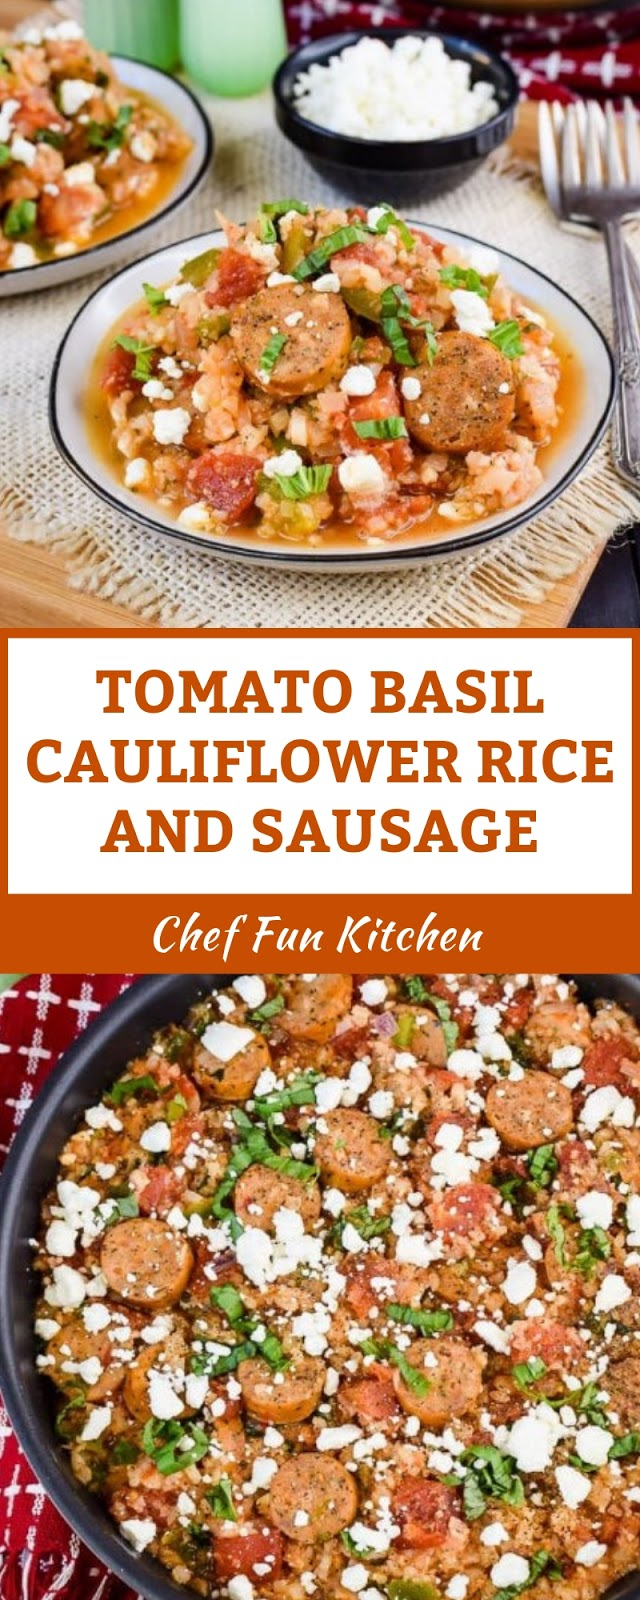 TOMATO BASIL CAULIFLOWER RICE AND SAUSAGE